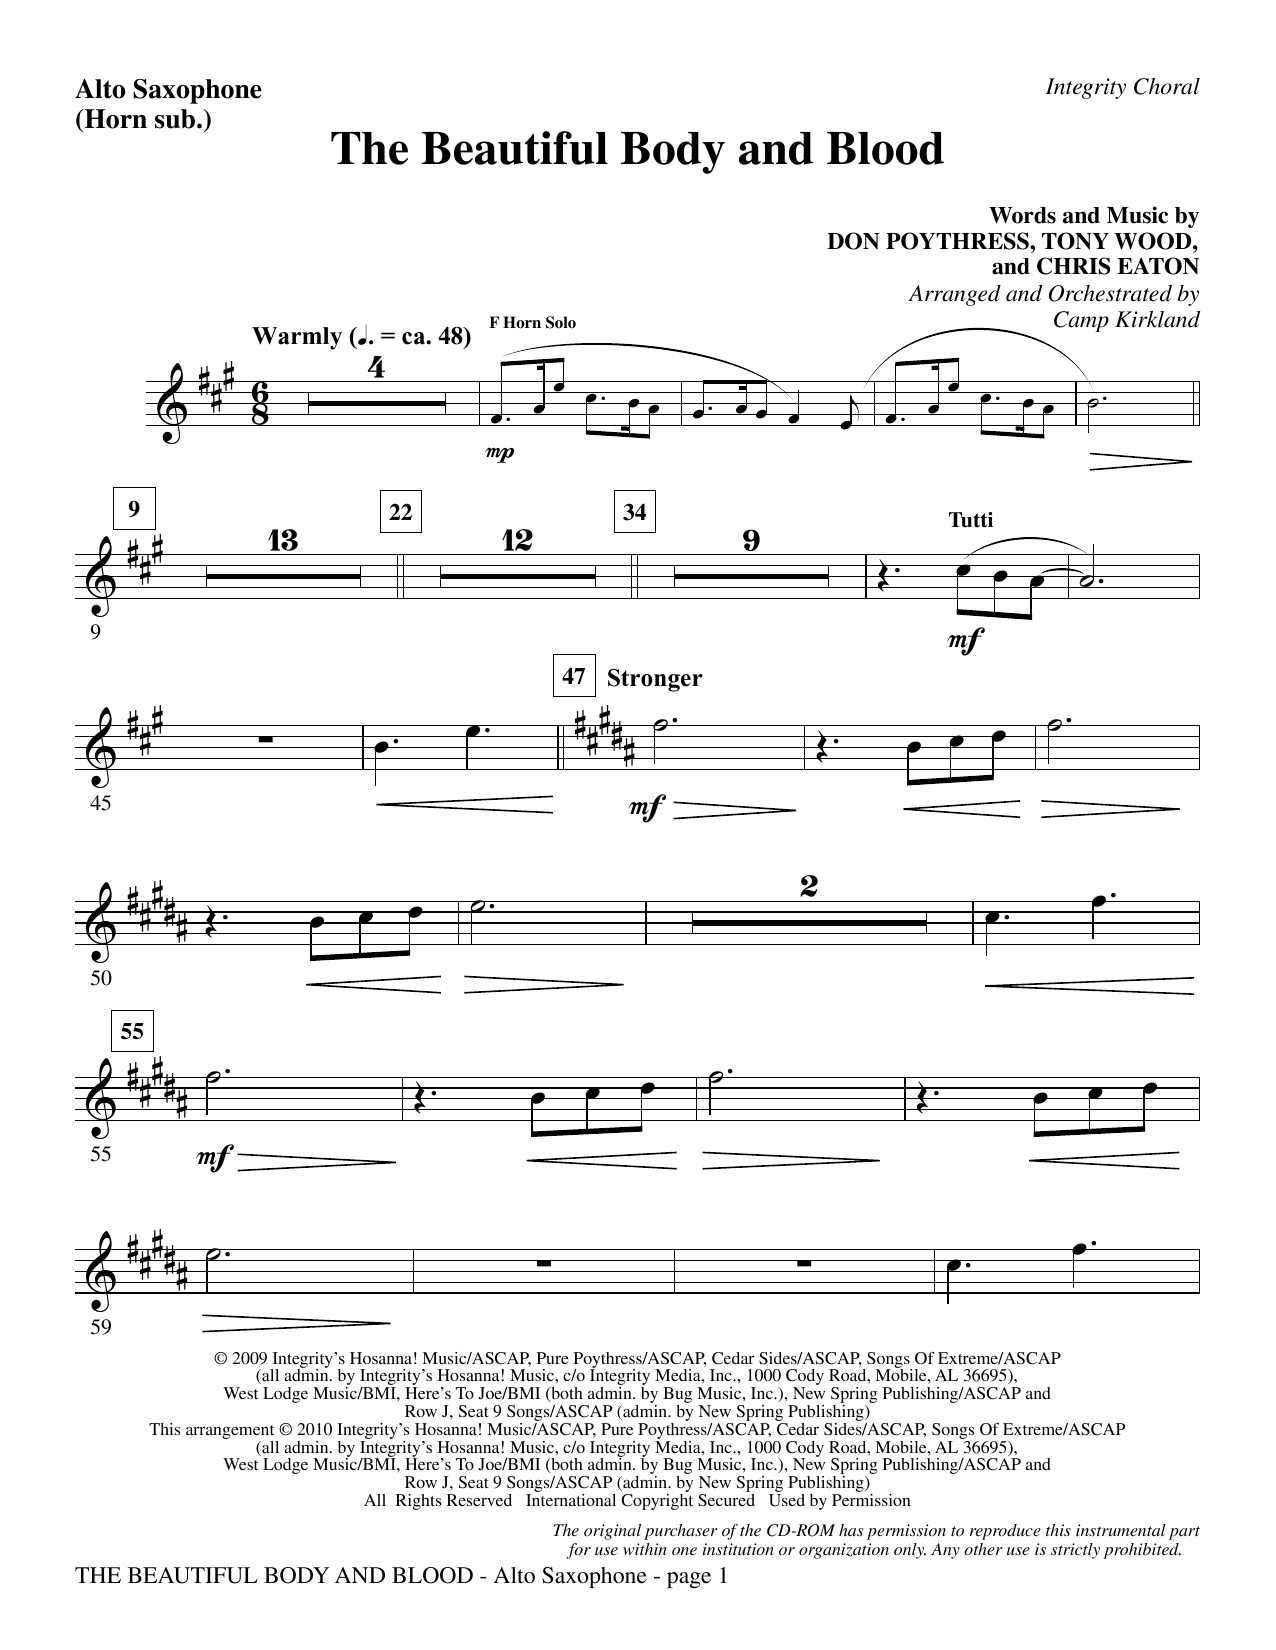 The Beautiful Body And Blood - Alto Sax (sub. Horn) Sheet Music